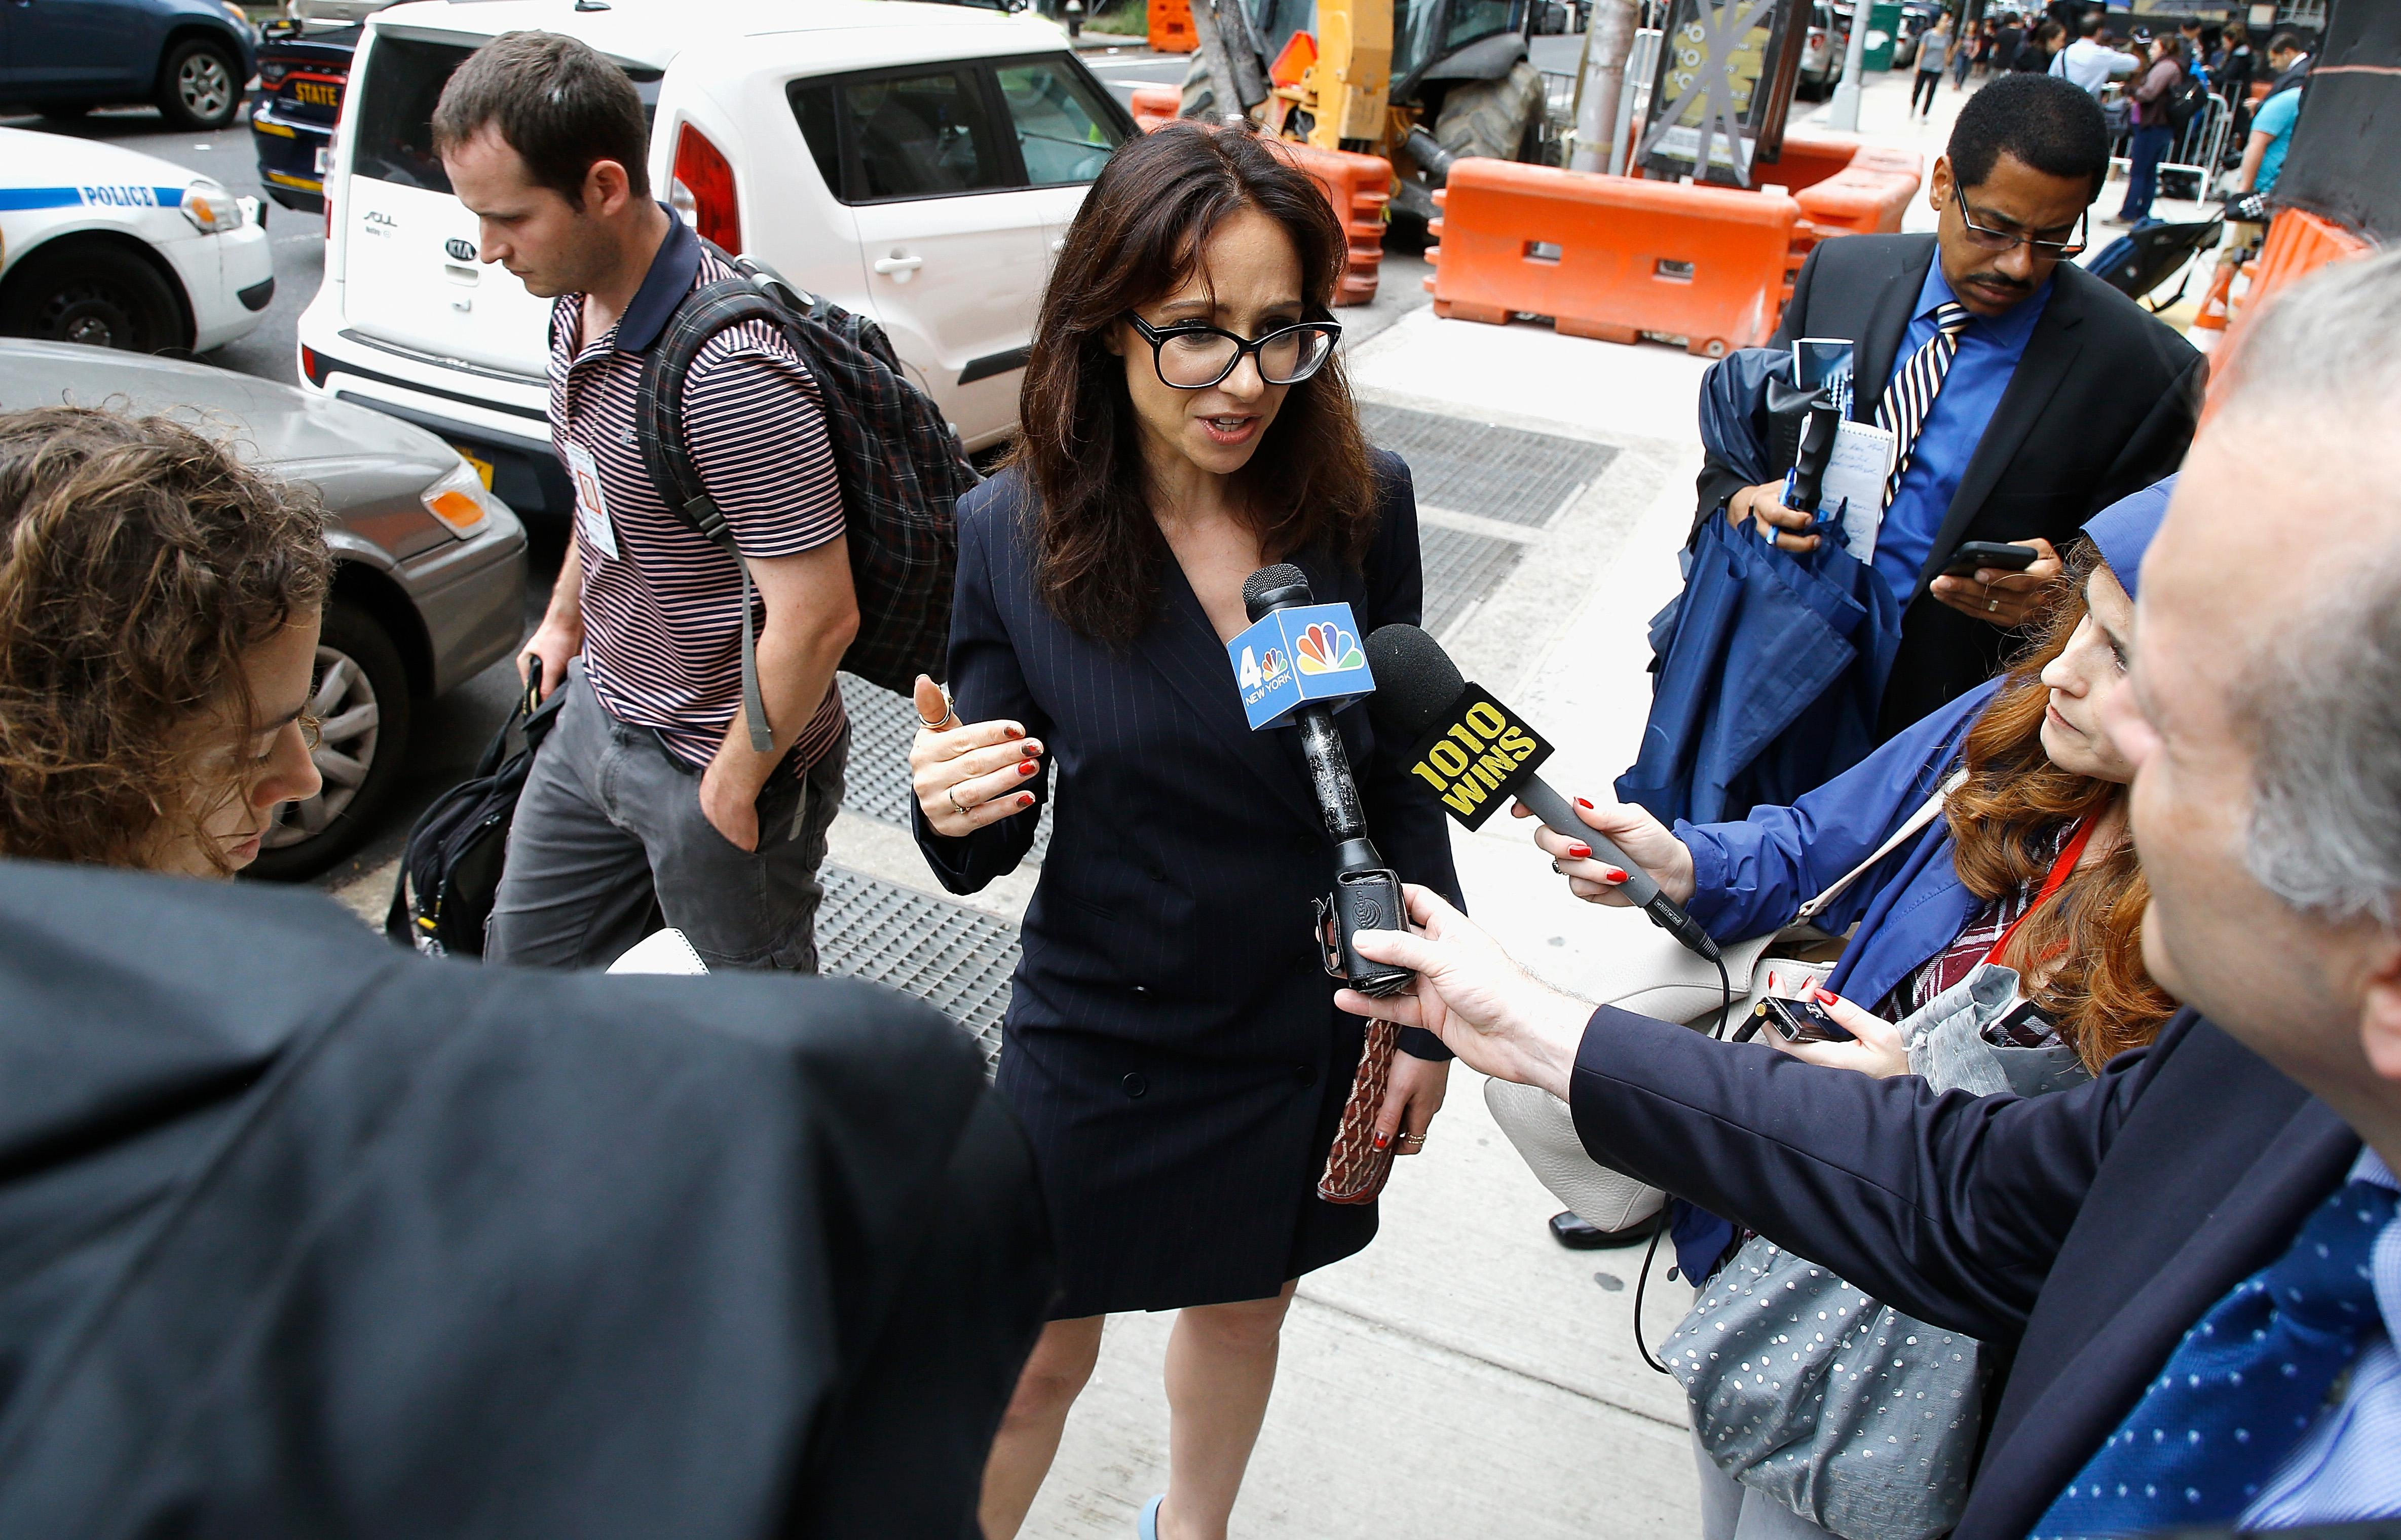 Sexual harassment lawyer: 'It's quite unusual' how perpetrators are able to use Big Tech